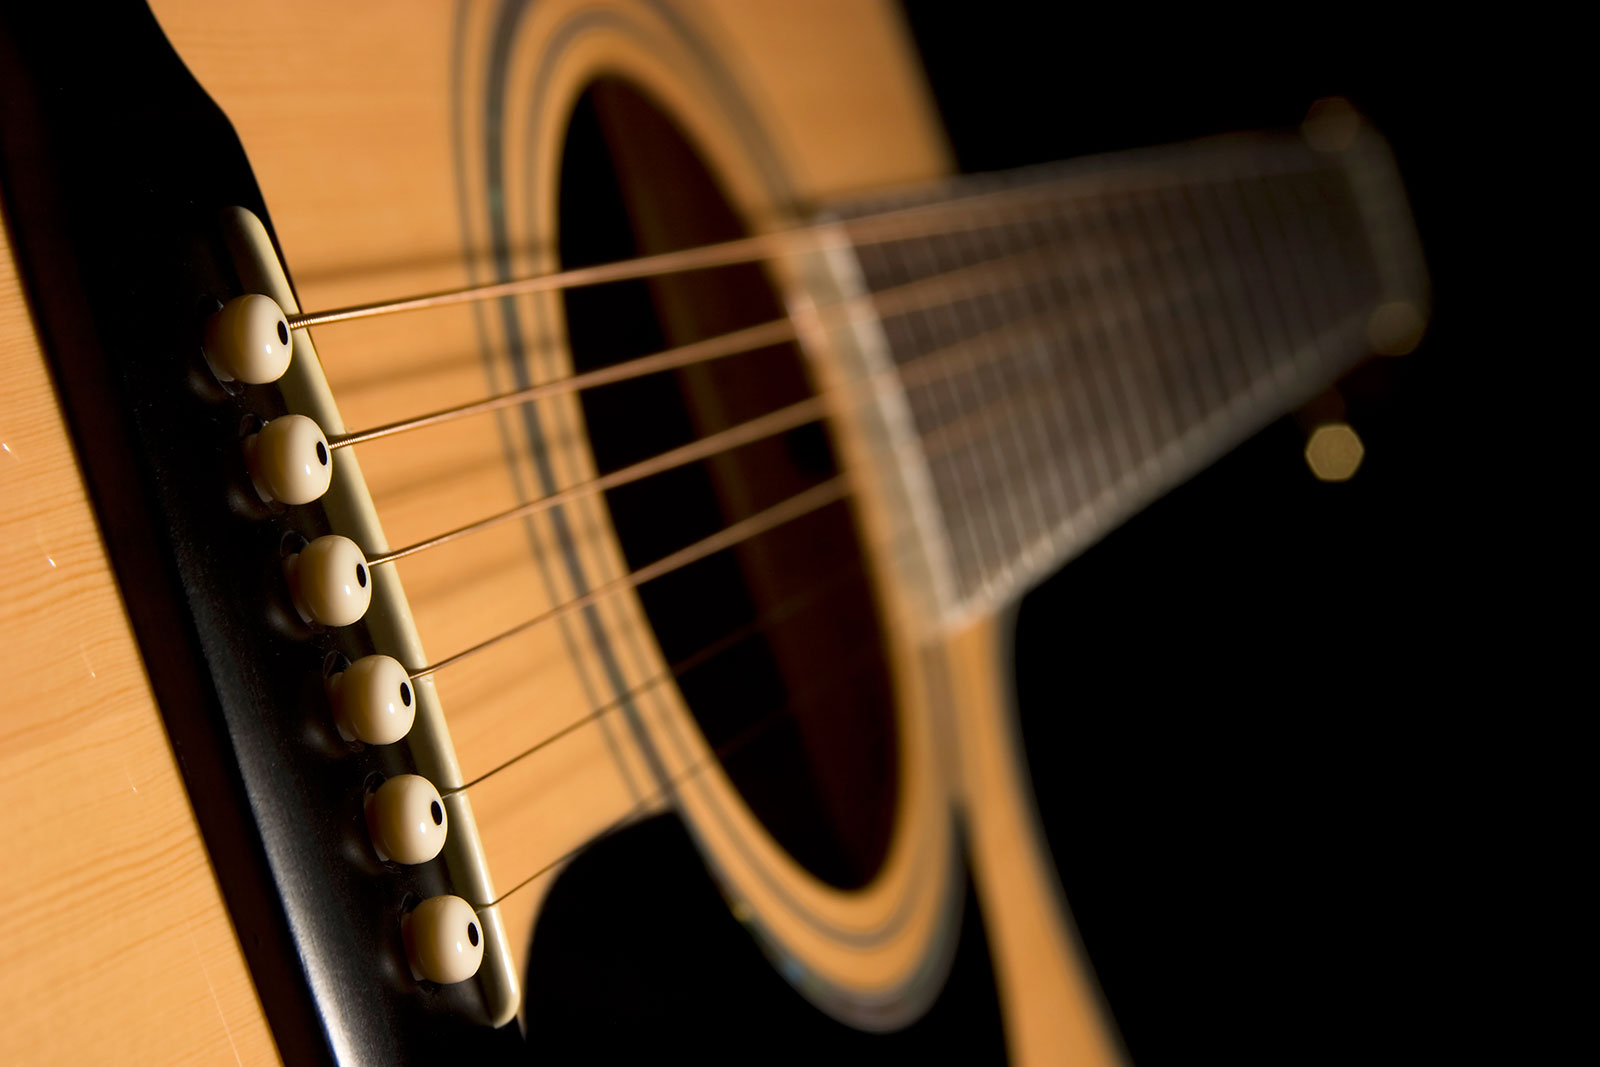 acoustic-guitar-closeup.jpg